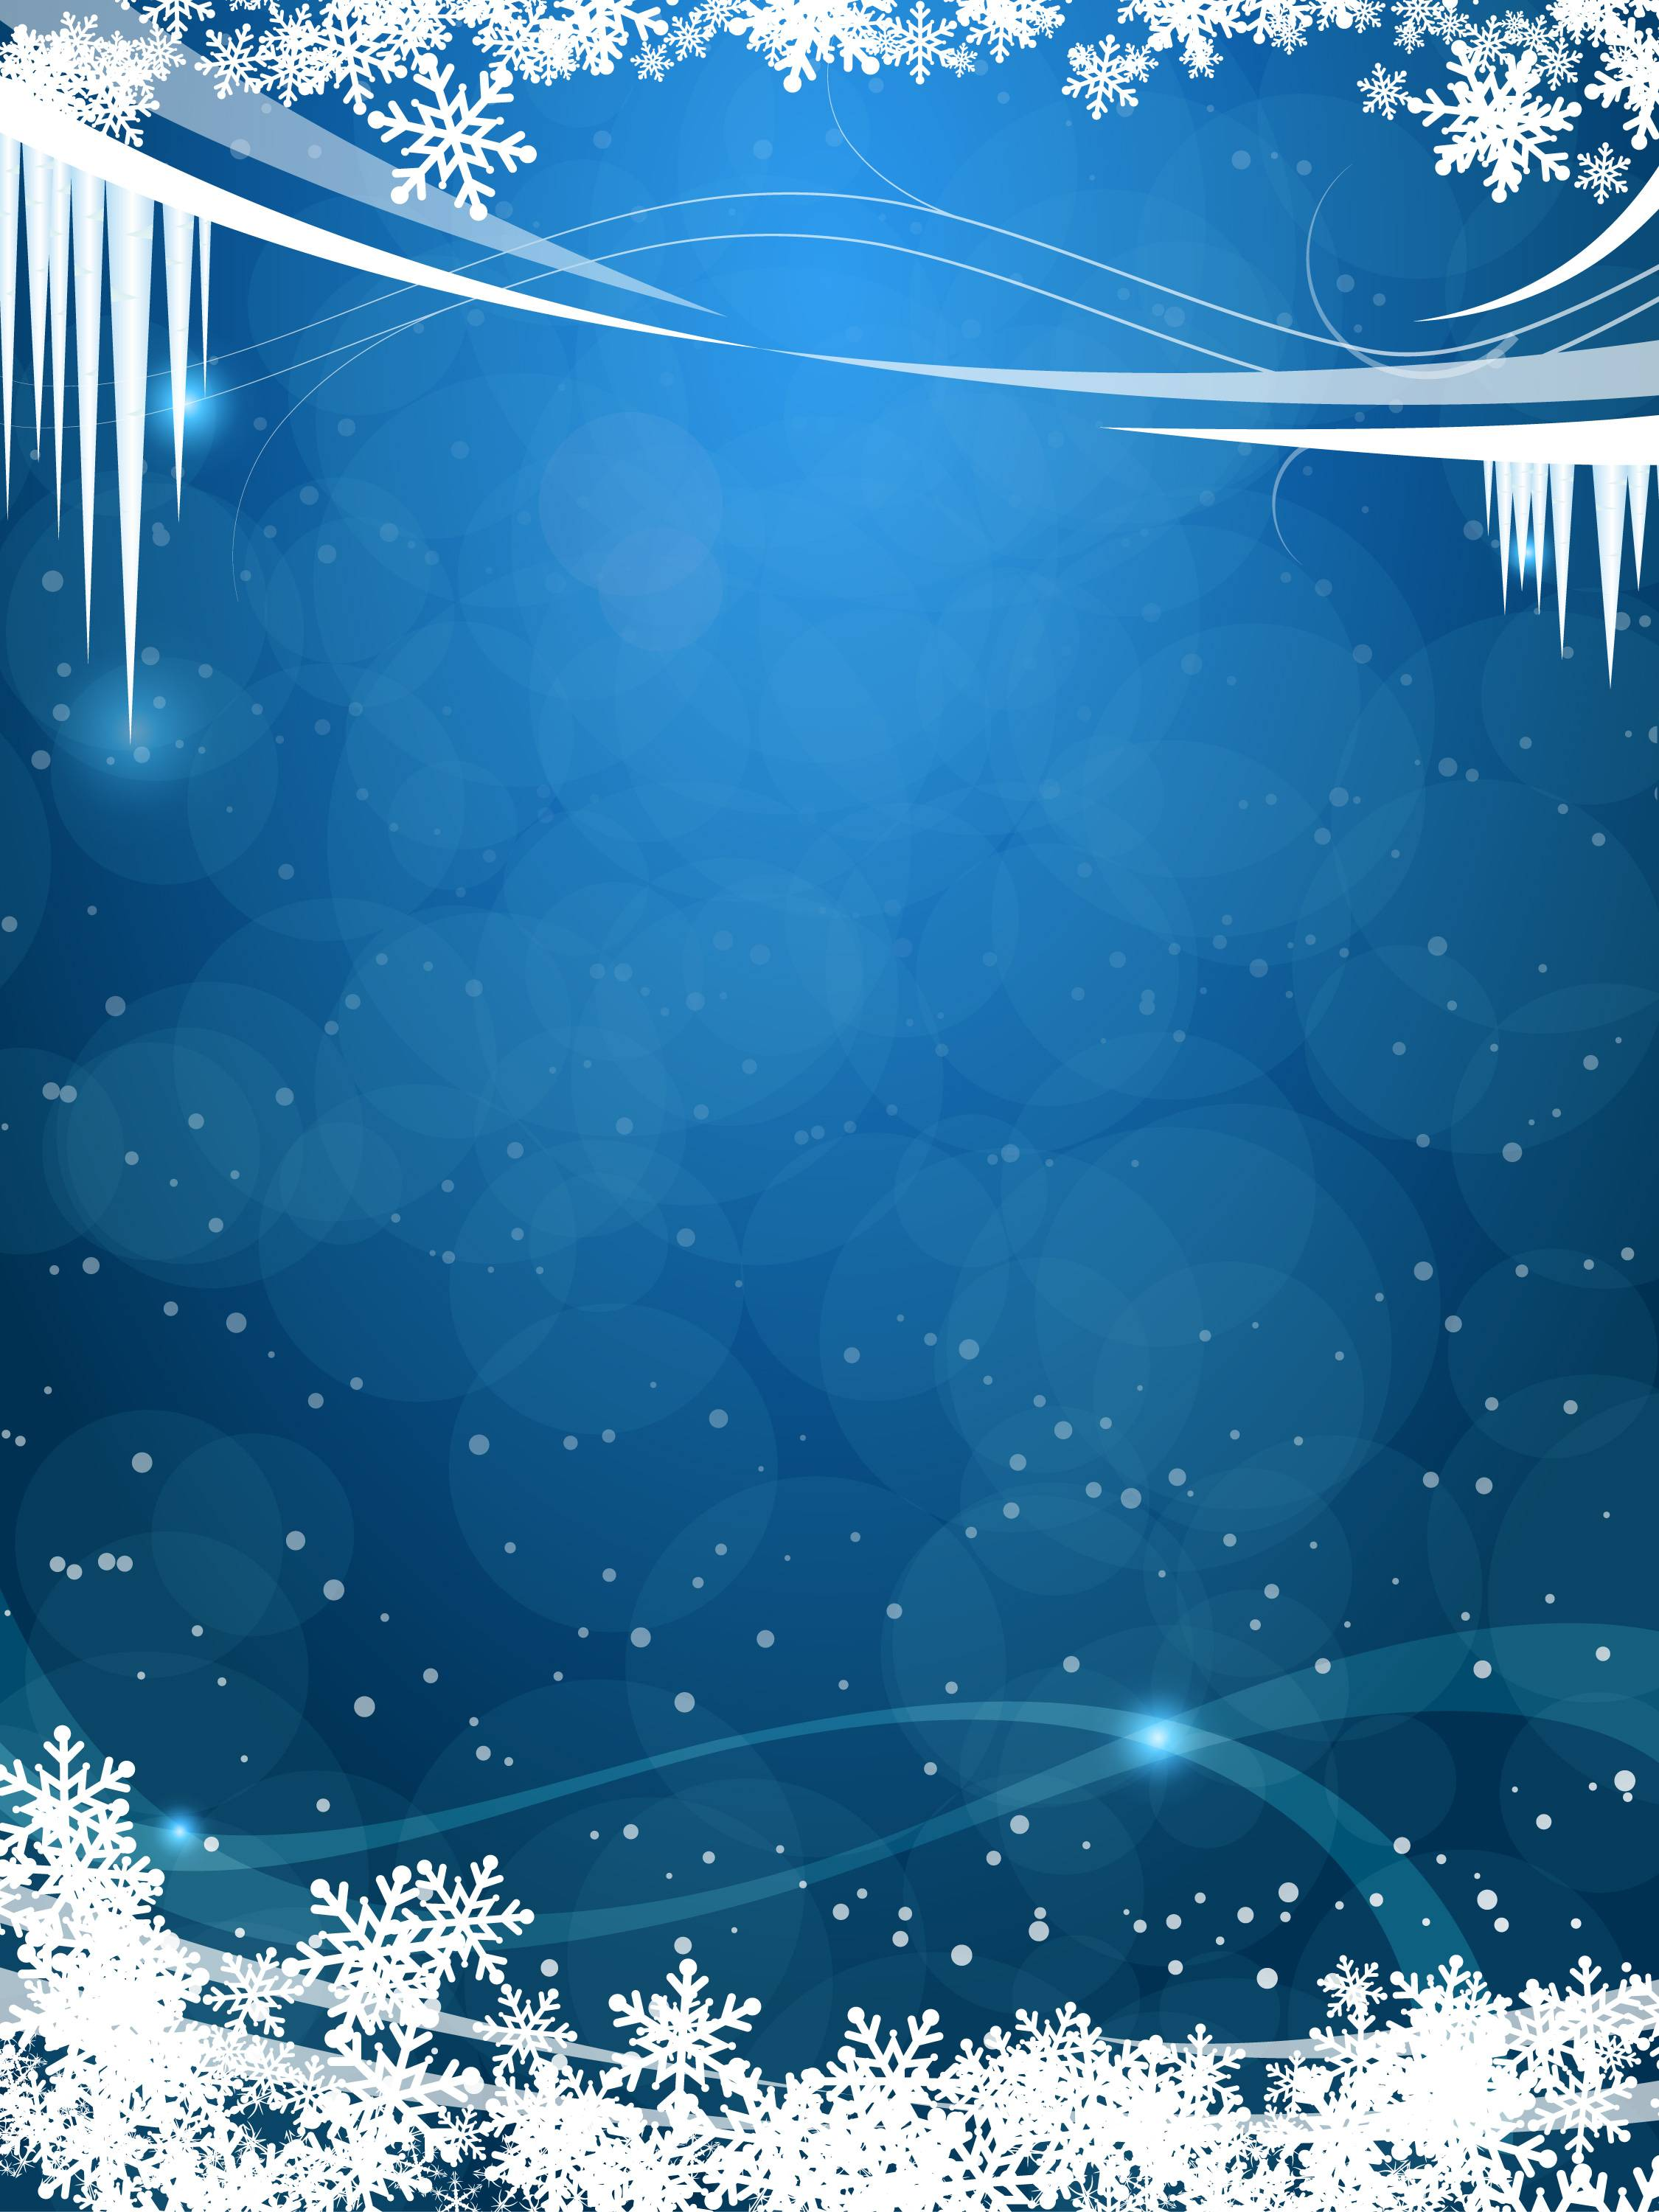 Wallpaper Falling Snow Snow Backgrounds Wallpaper Cave